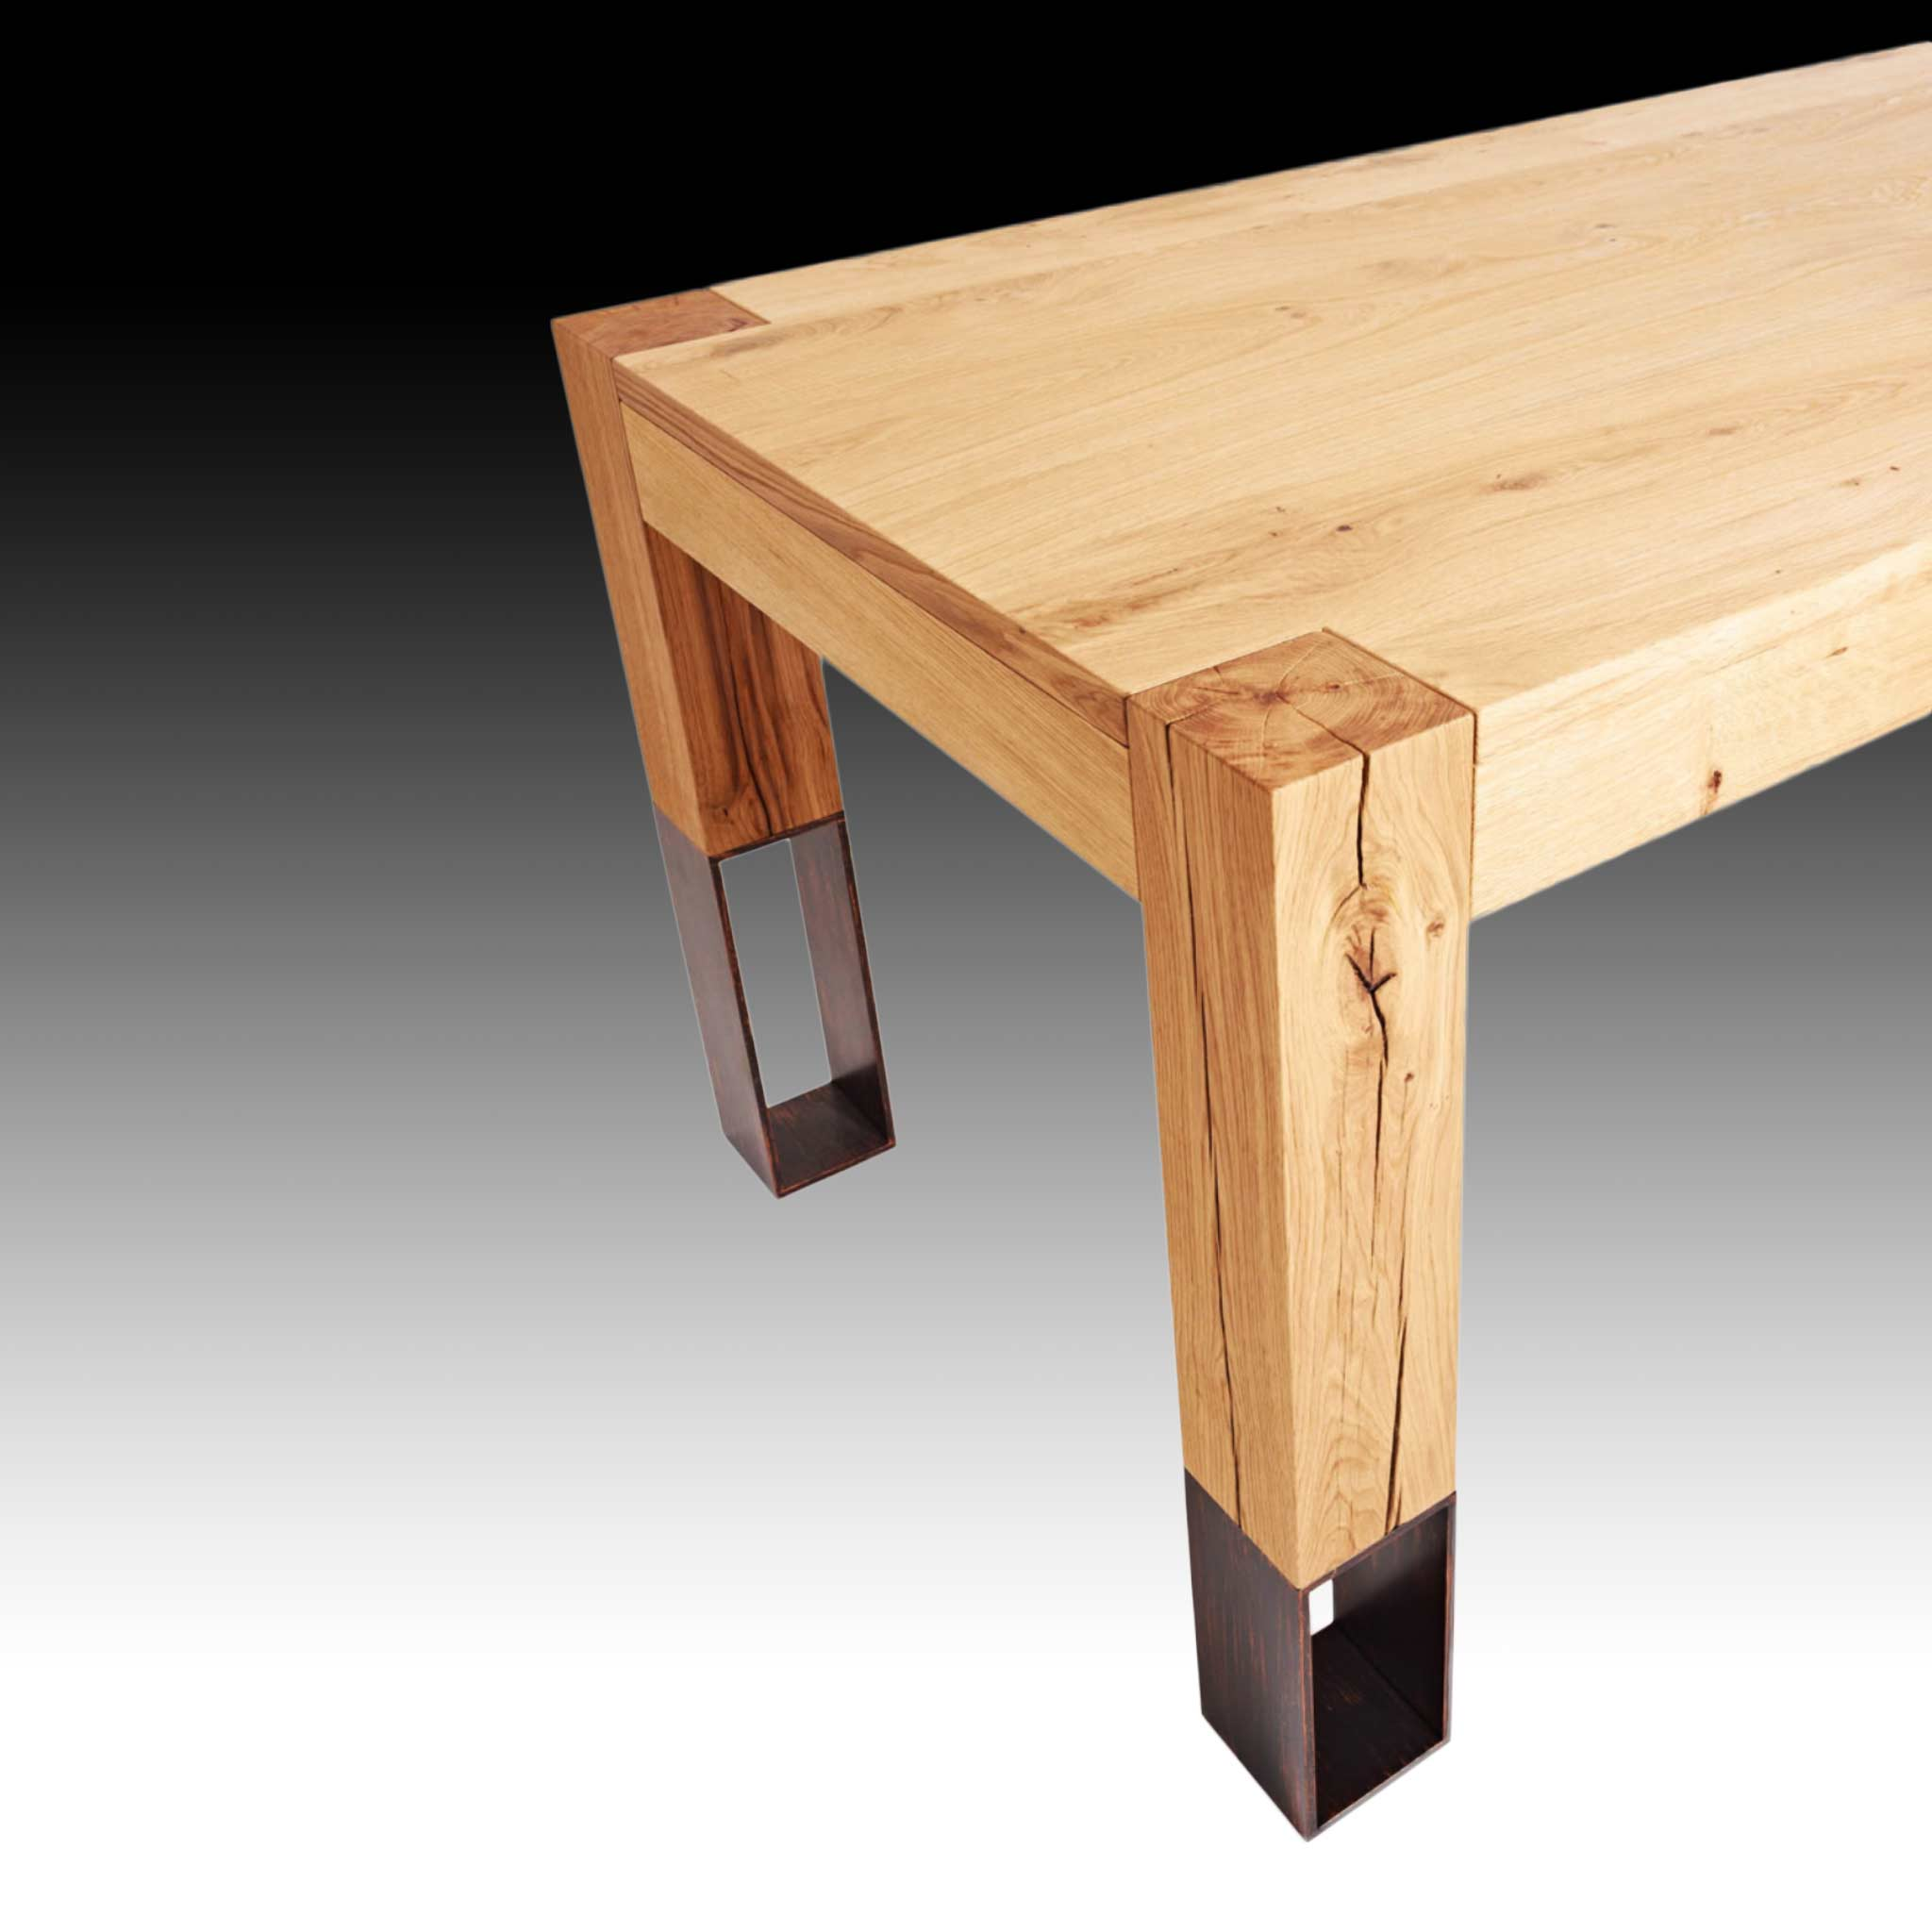 Dining table bespoke